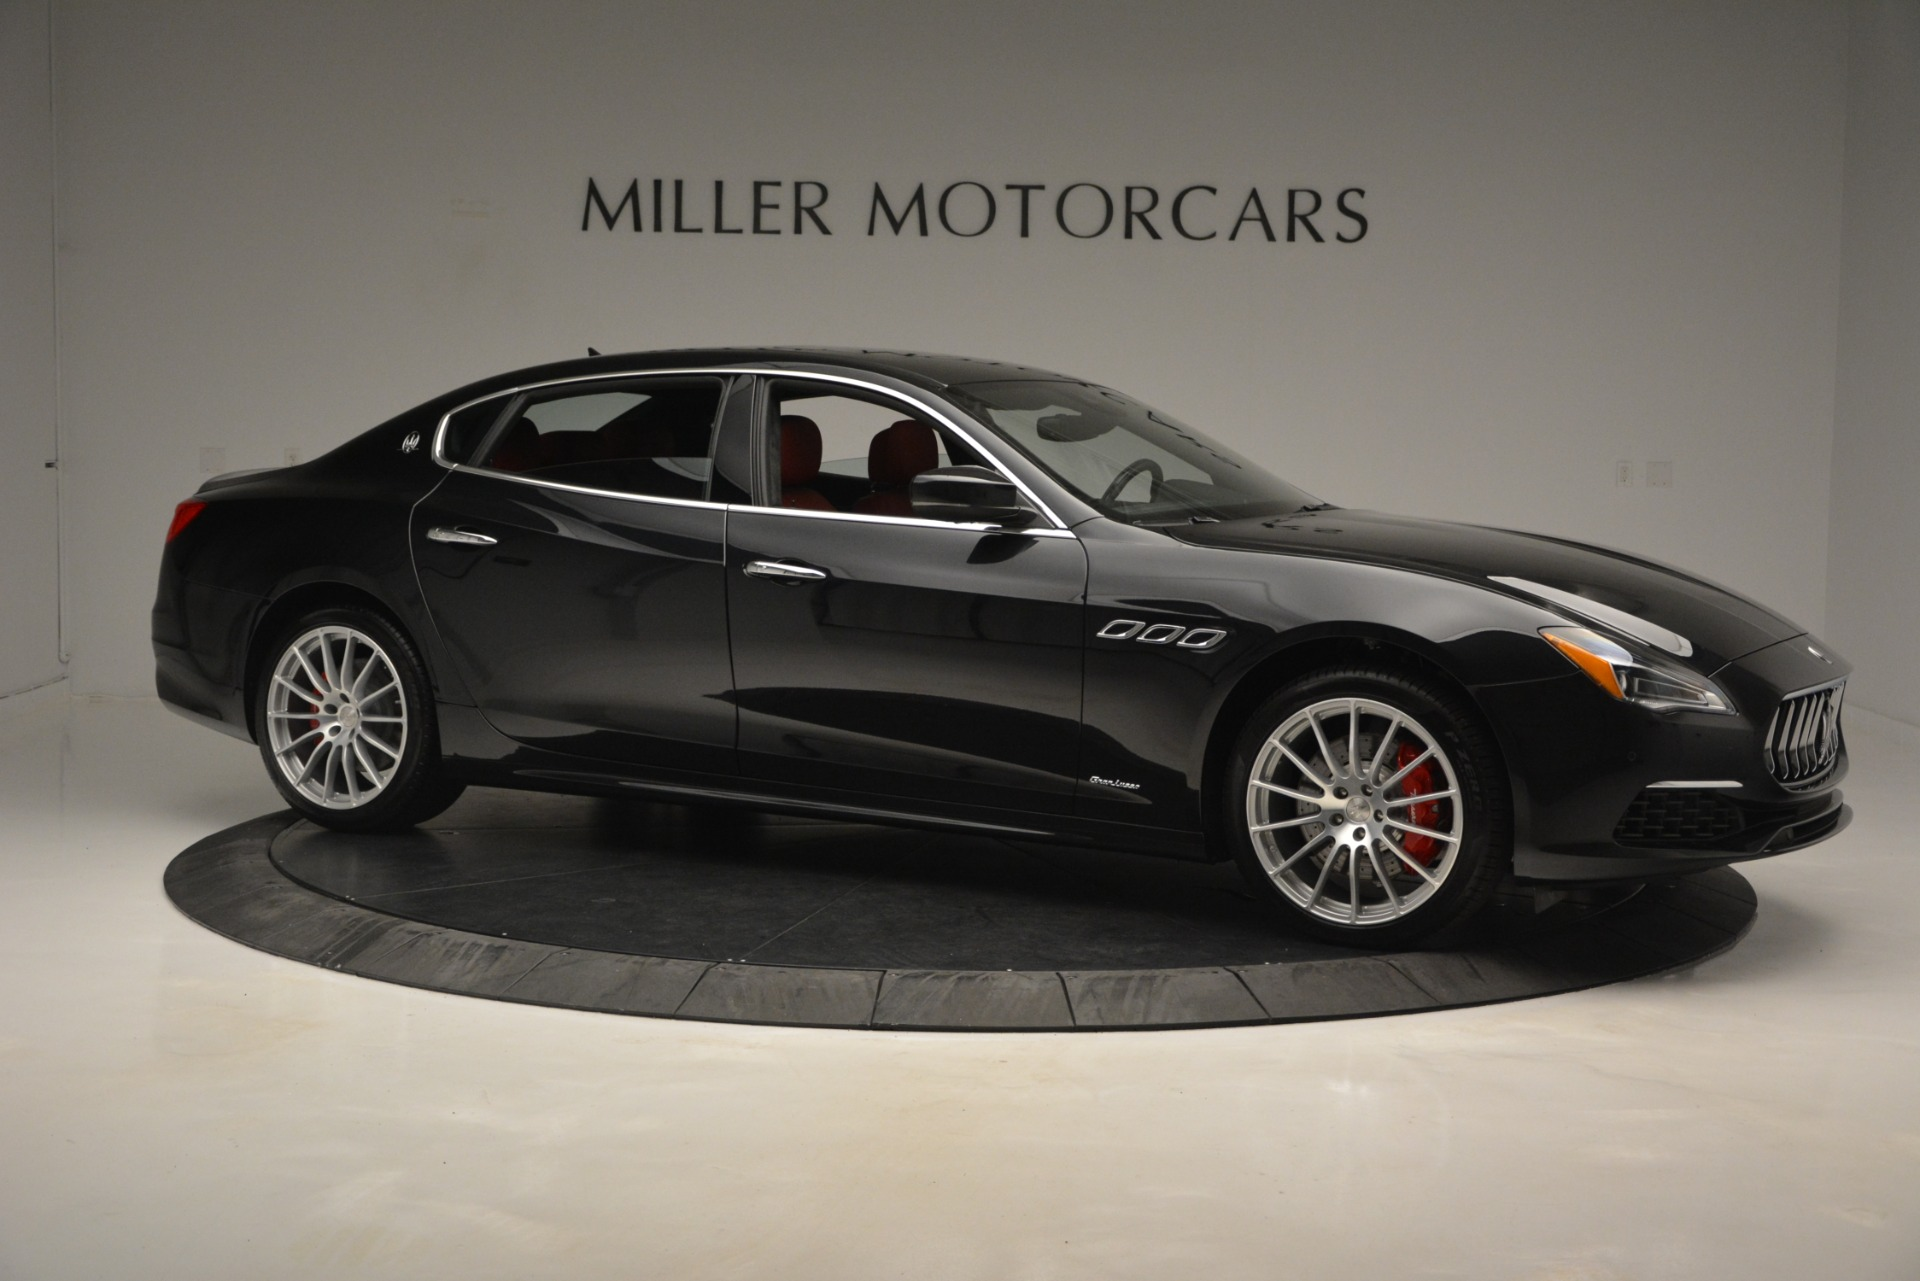 New 2019 Maserati Quattroporte S Q4 GranLusso For Sale In Greenwich, CT 2718_p10